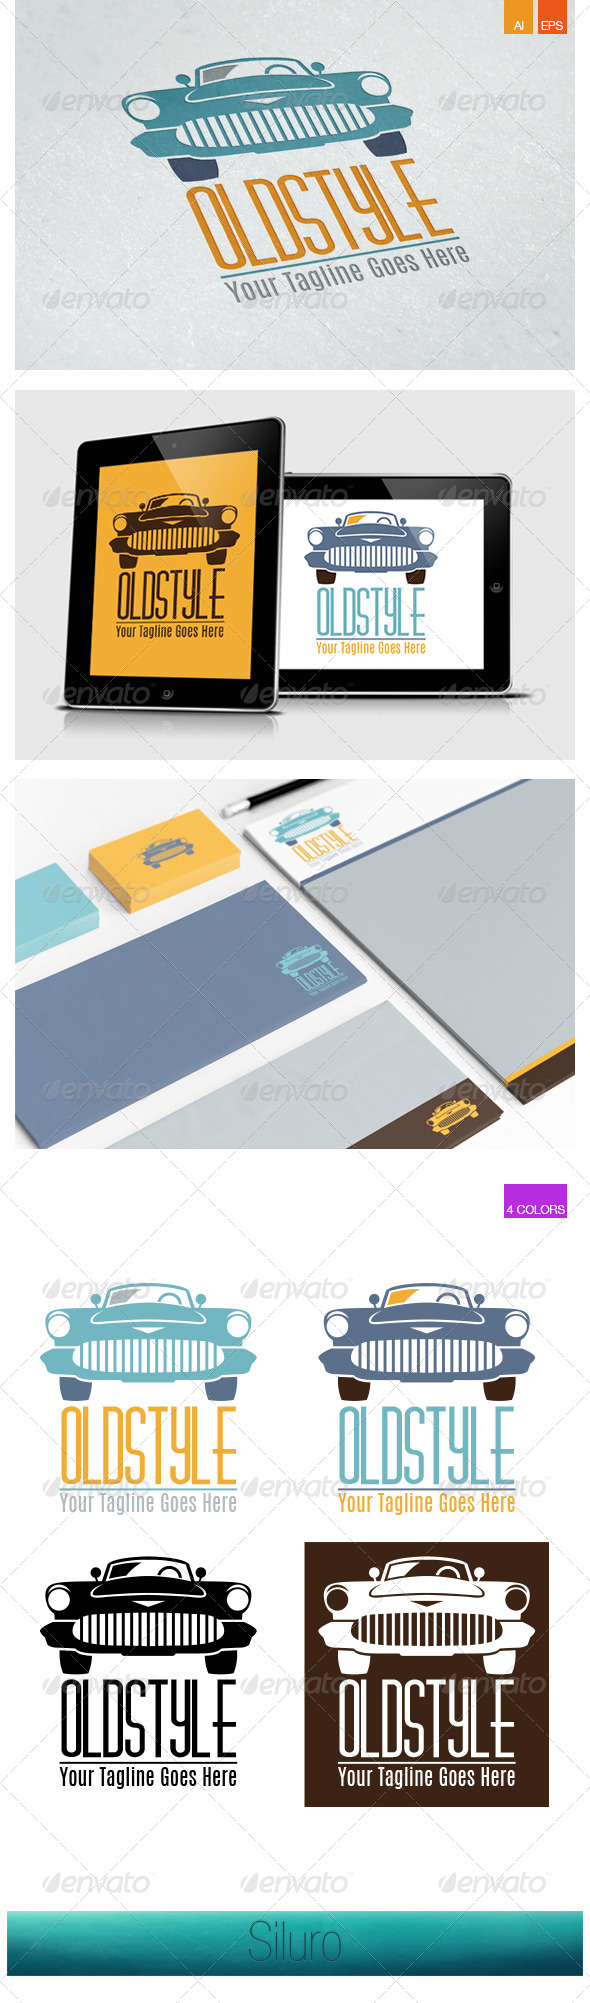 GraphicRiver OldStyle Logo 8164764